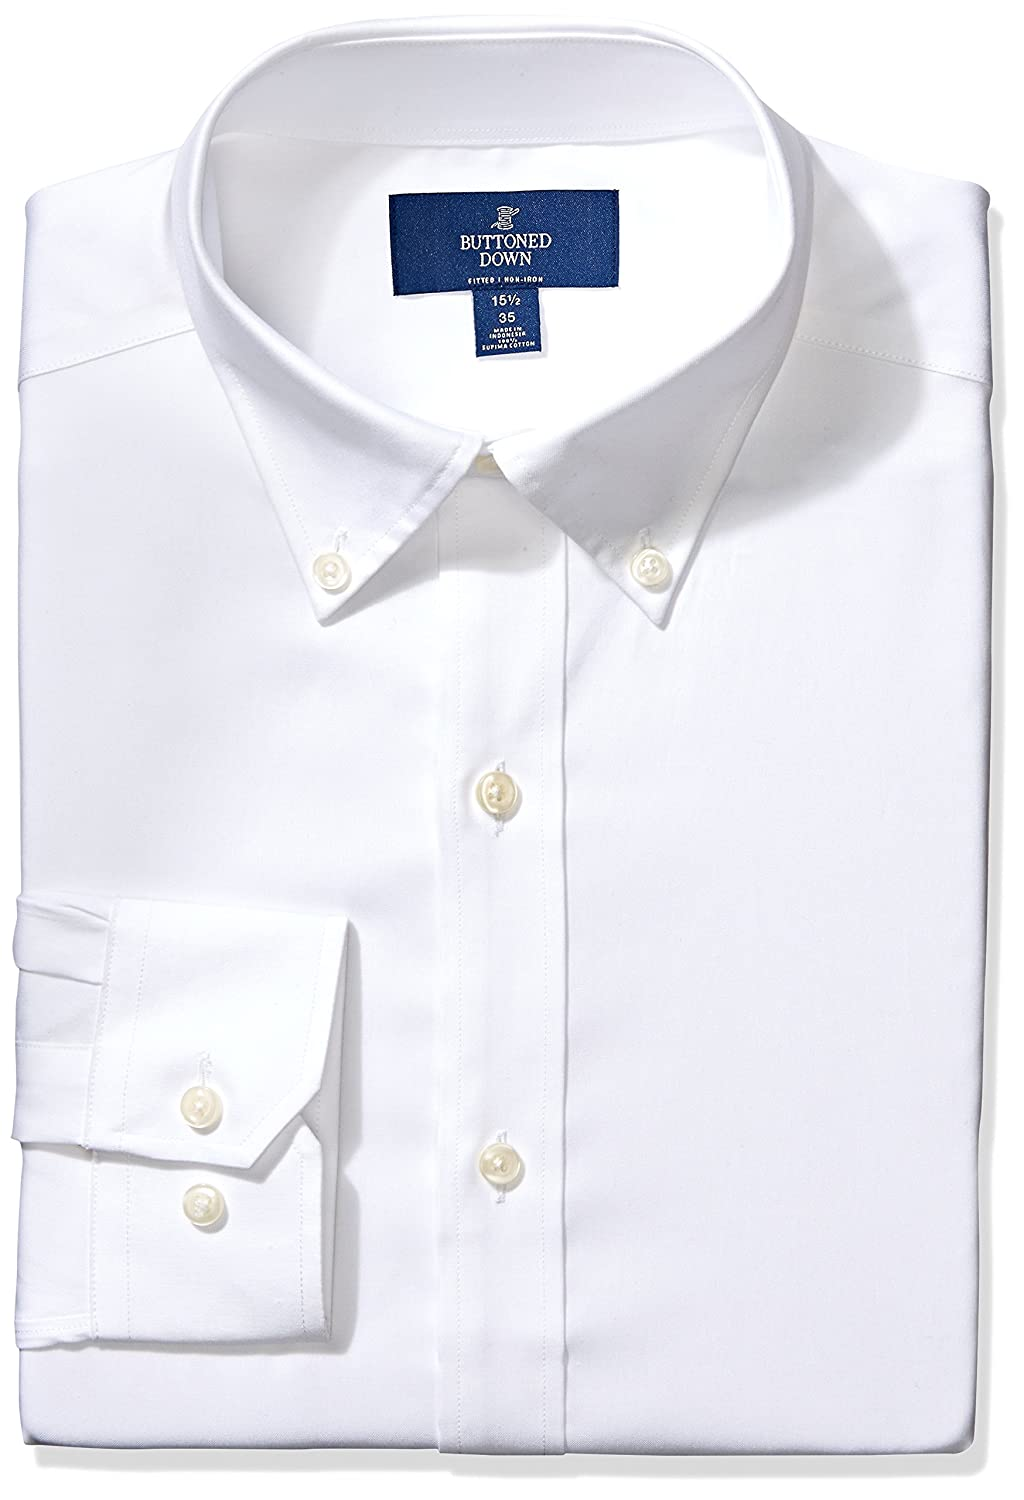 Buttoned Down Men's Fitted Button-Collar Non-Iron Dress Shirt MBD30007